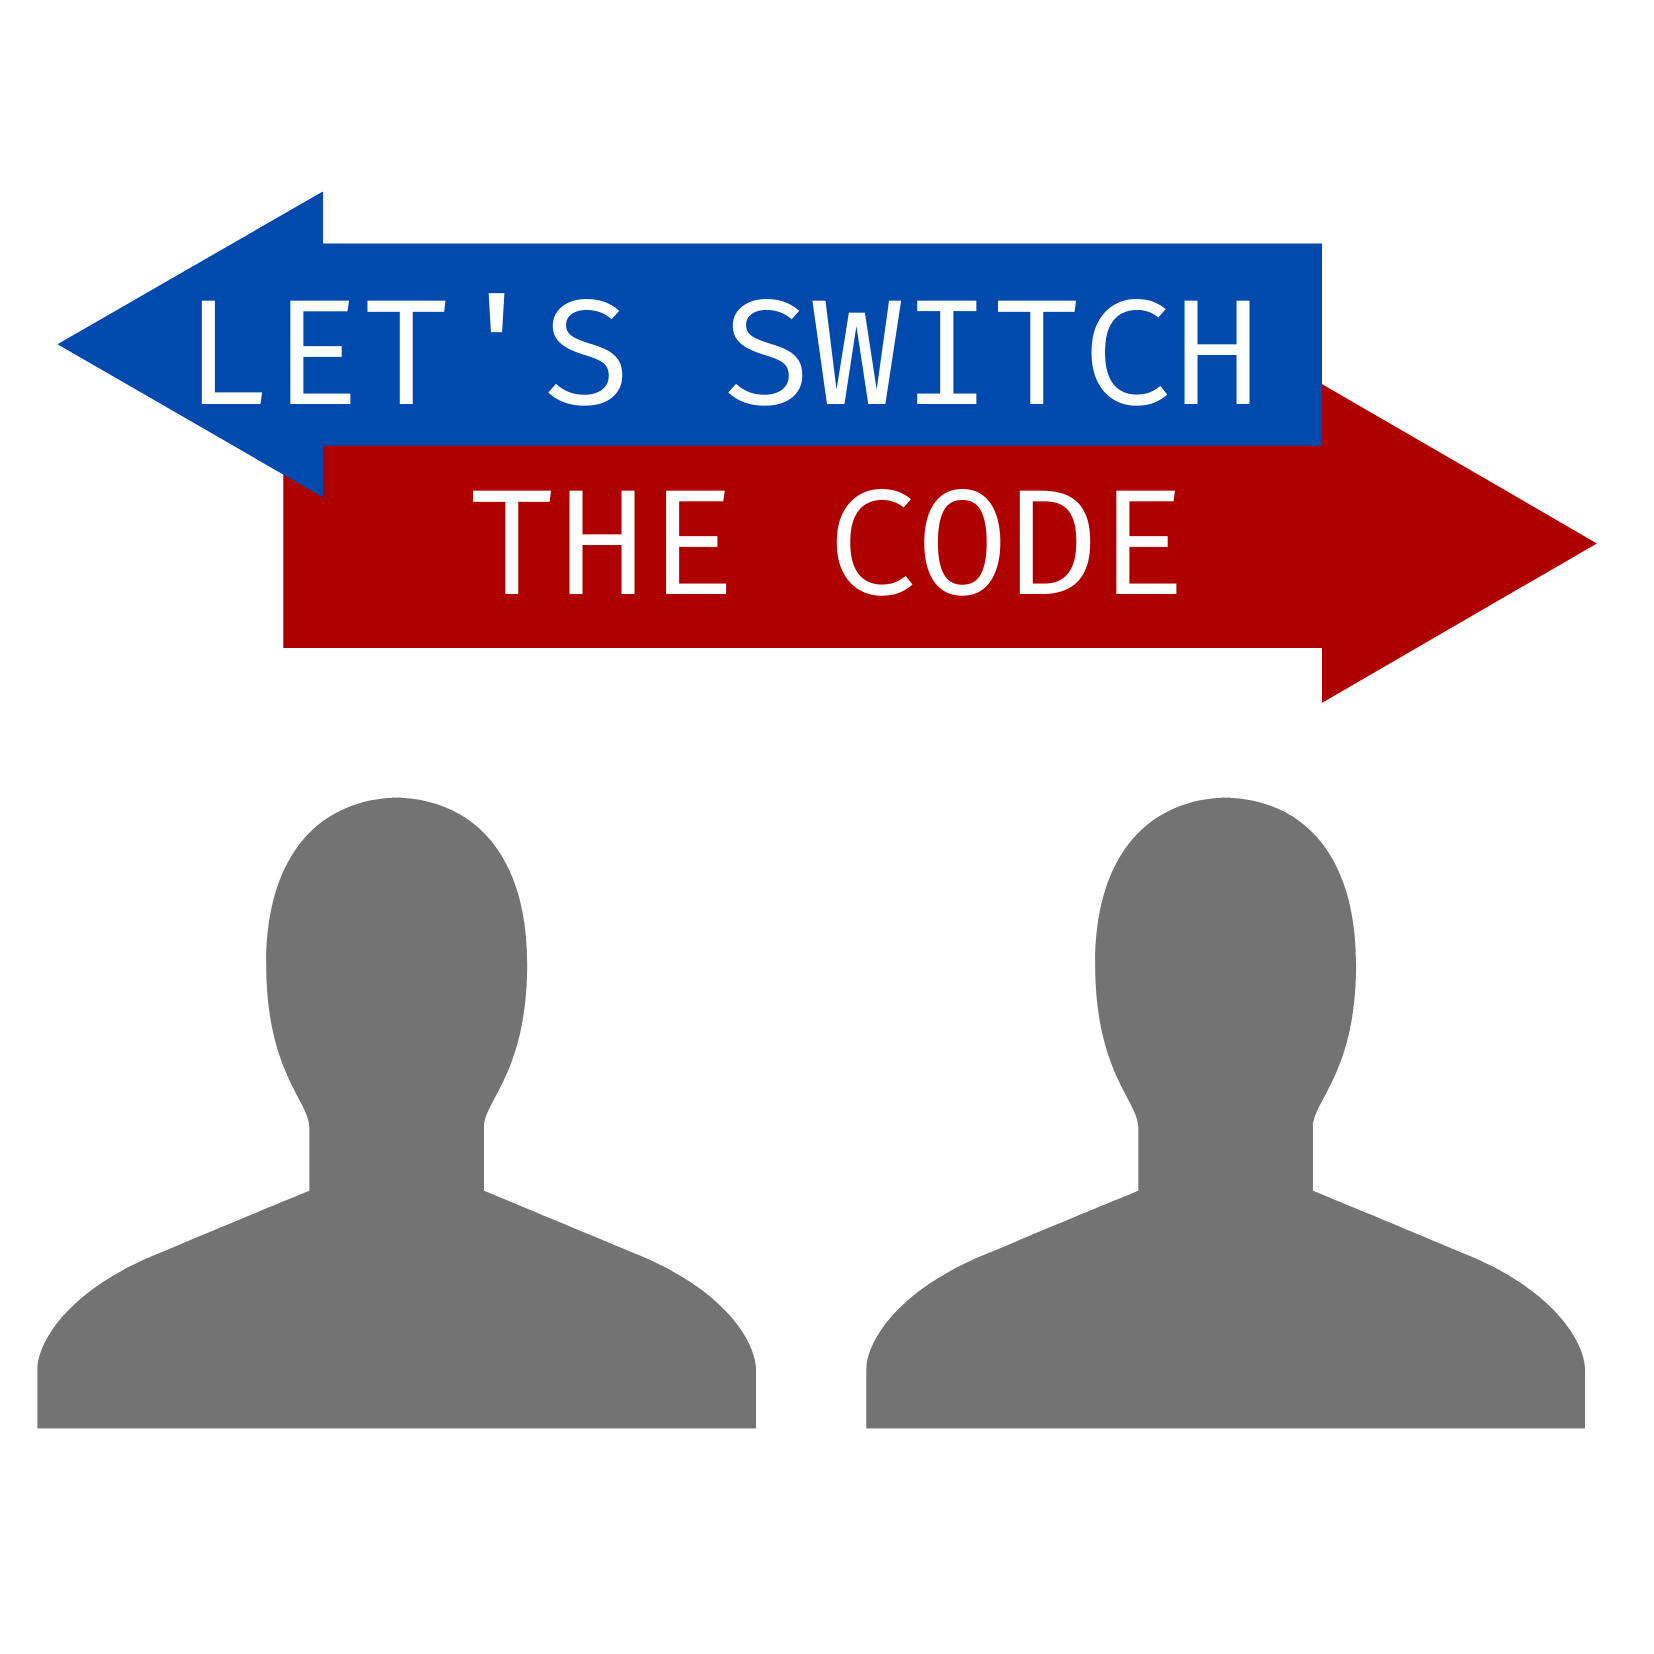 Let's Switch the Code